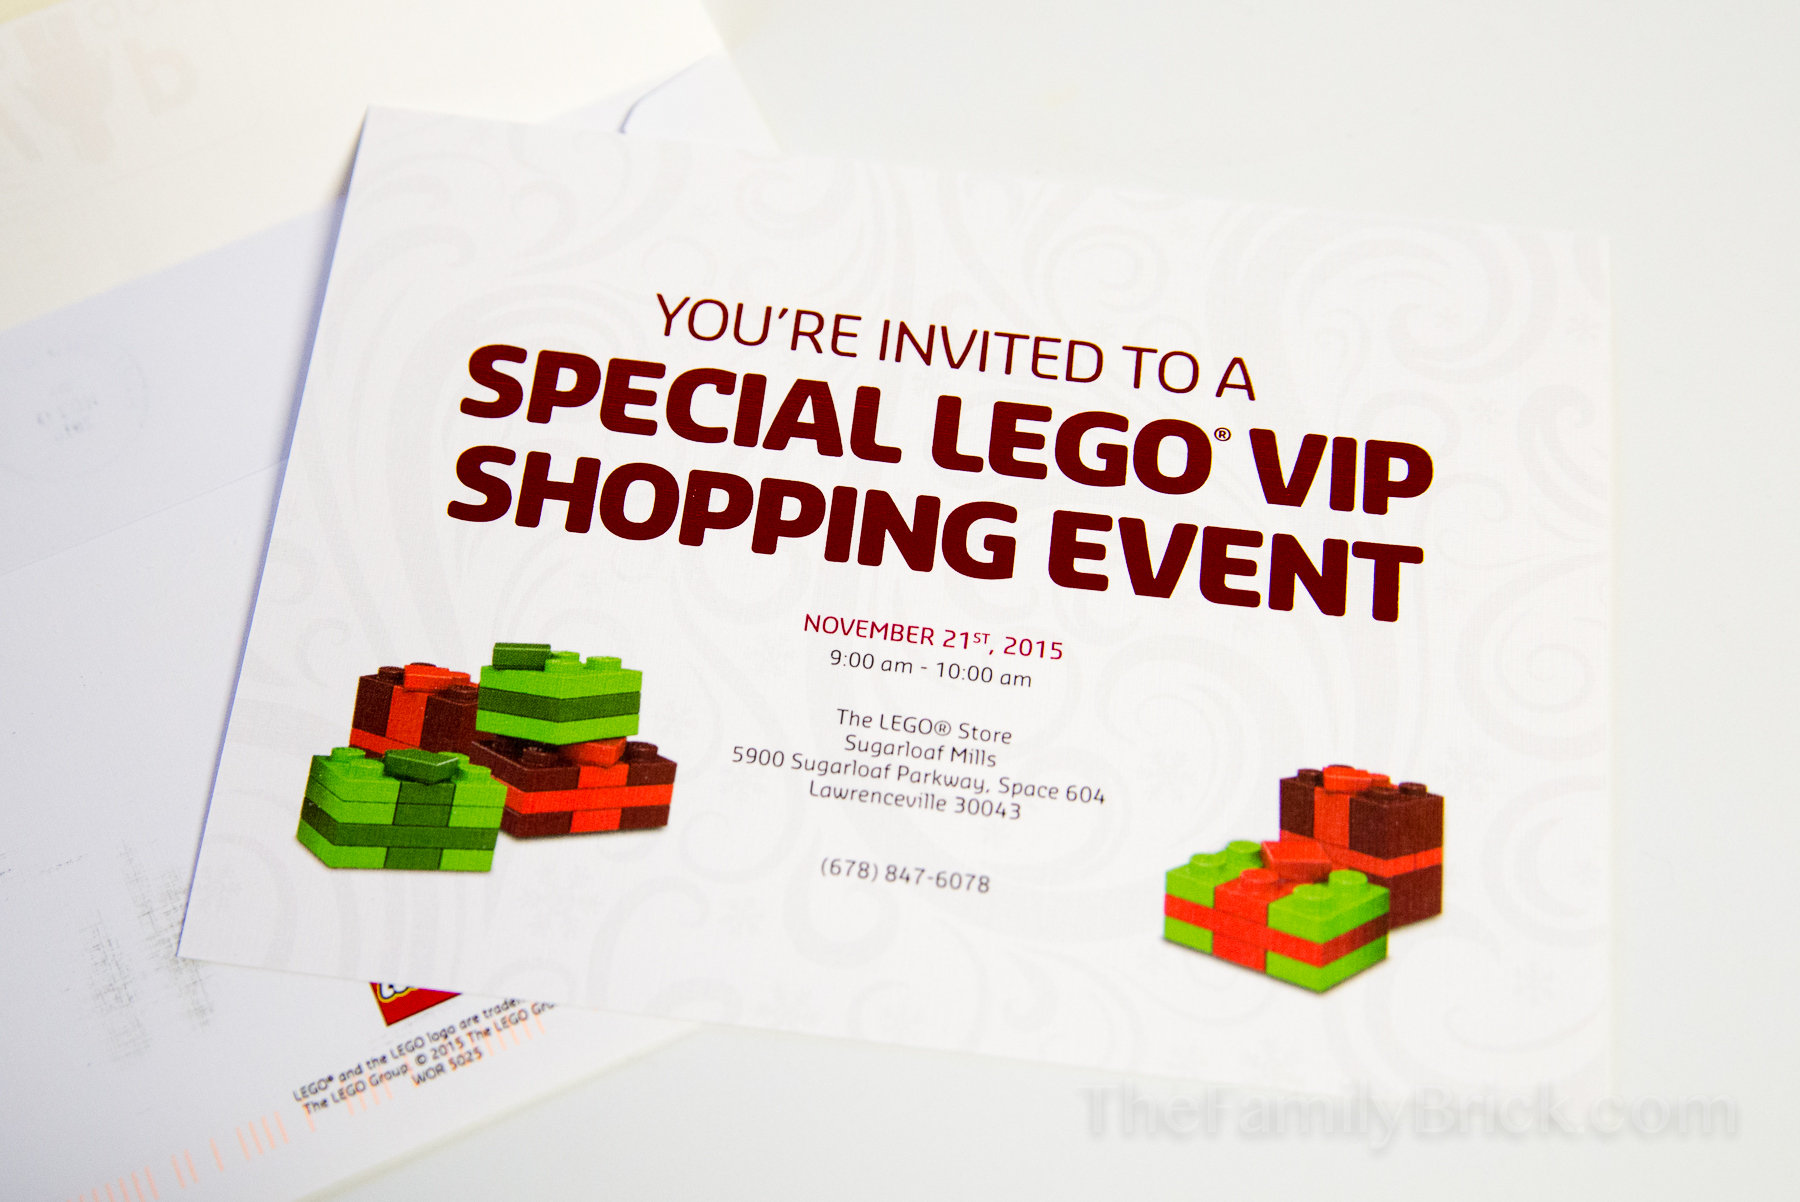 LEGO VIP Shopping Event 2015